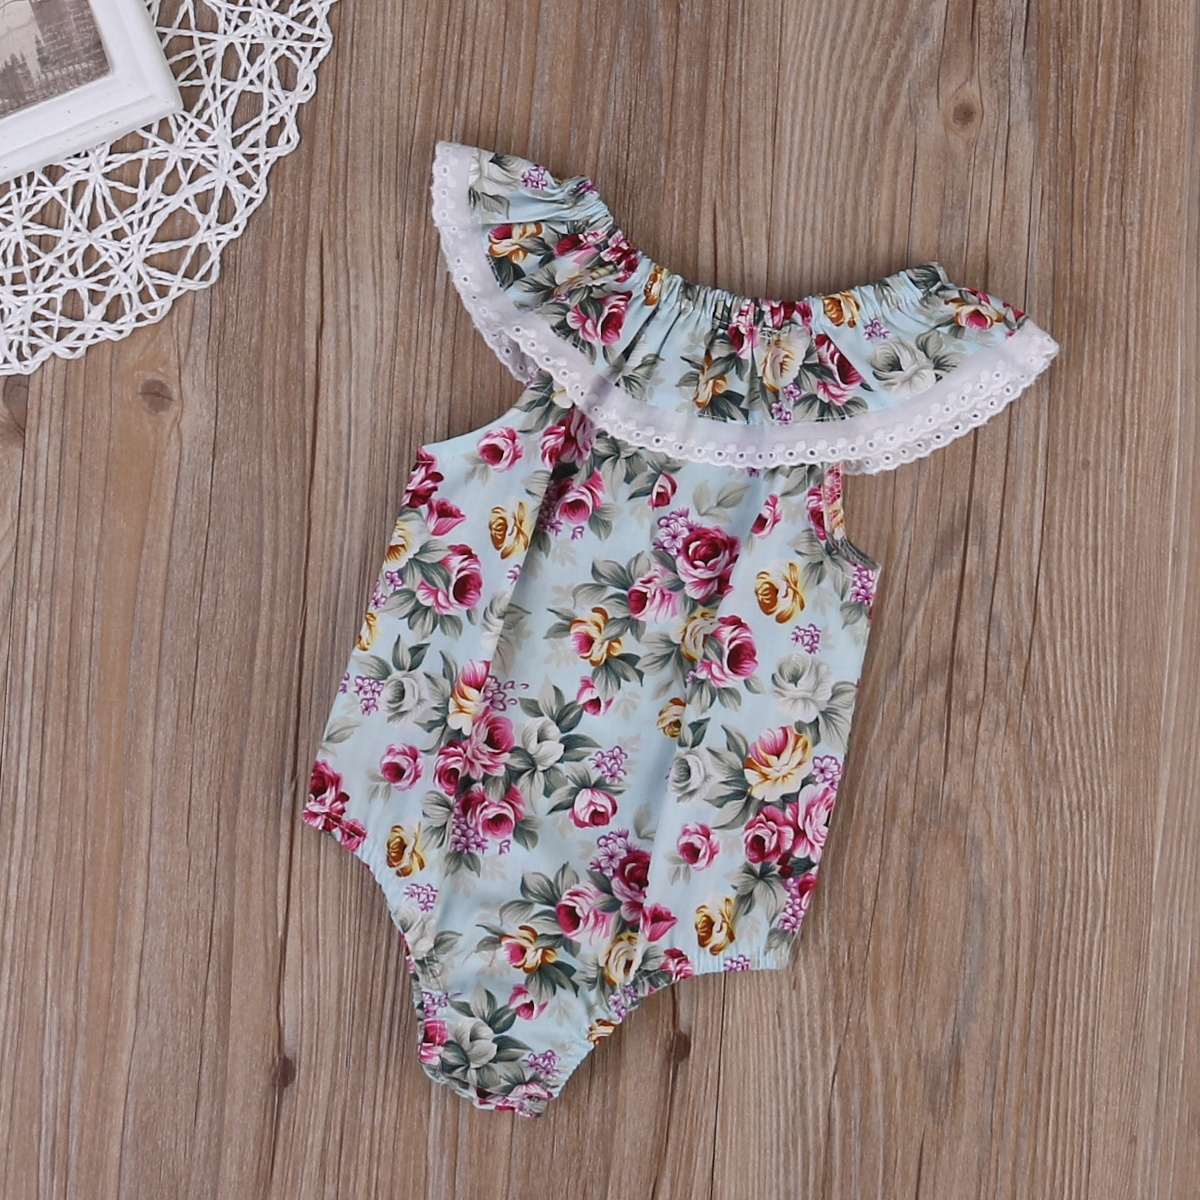 Lovely Infant Newborn Baby Floral Lace Romper Bodysuit Jumpsuit Clothes Outfits